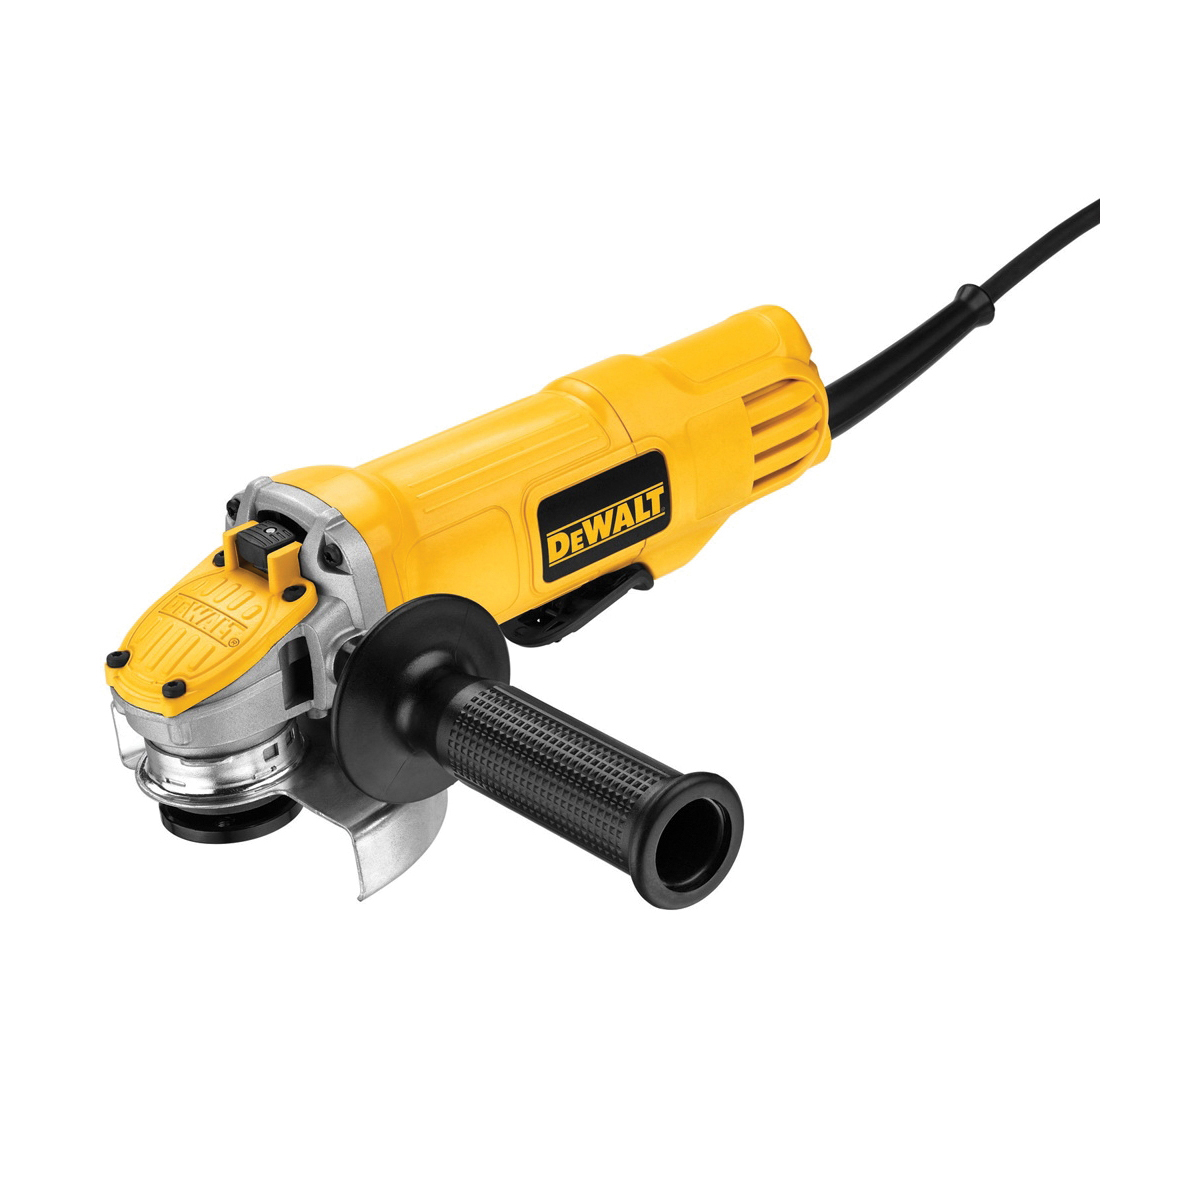 DeWALT® DWE4120N Small Angle Grinder, 4-1/2 in Dia Wheel, 5/8-11 Arbor/Shank, 120 VAC, For Wheel: Quick-Change™, Yellow, No, Non-Locking Paddle Switch Switch